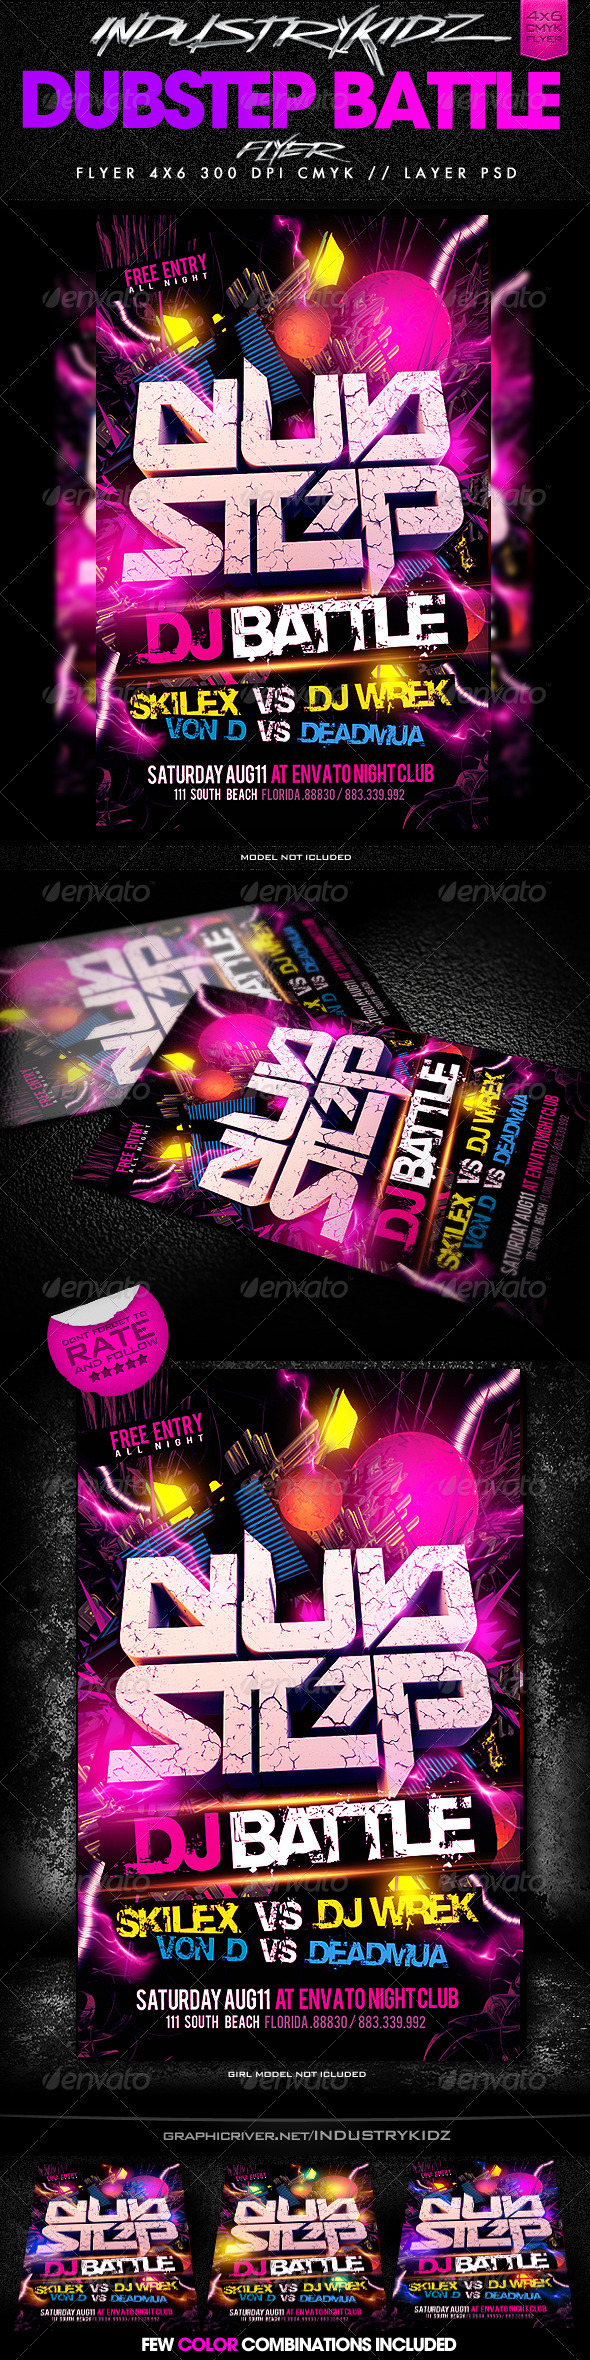 Dubstep Dj Battle Flyer Template - Clubs & Parties Events